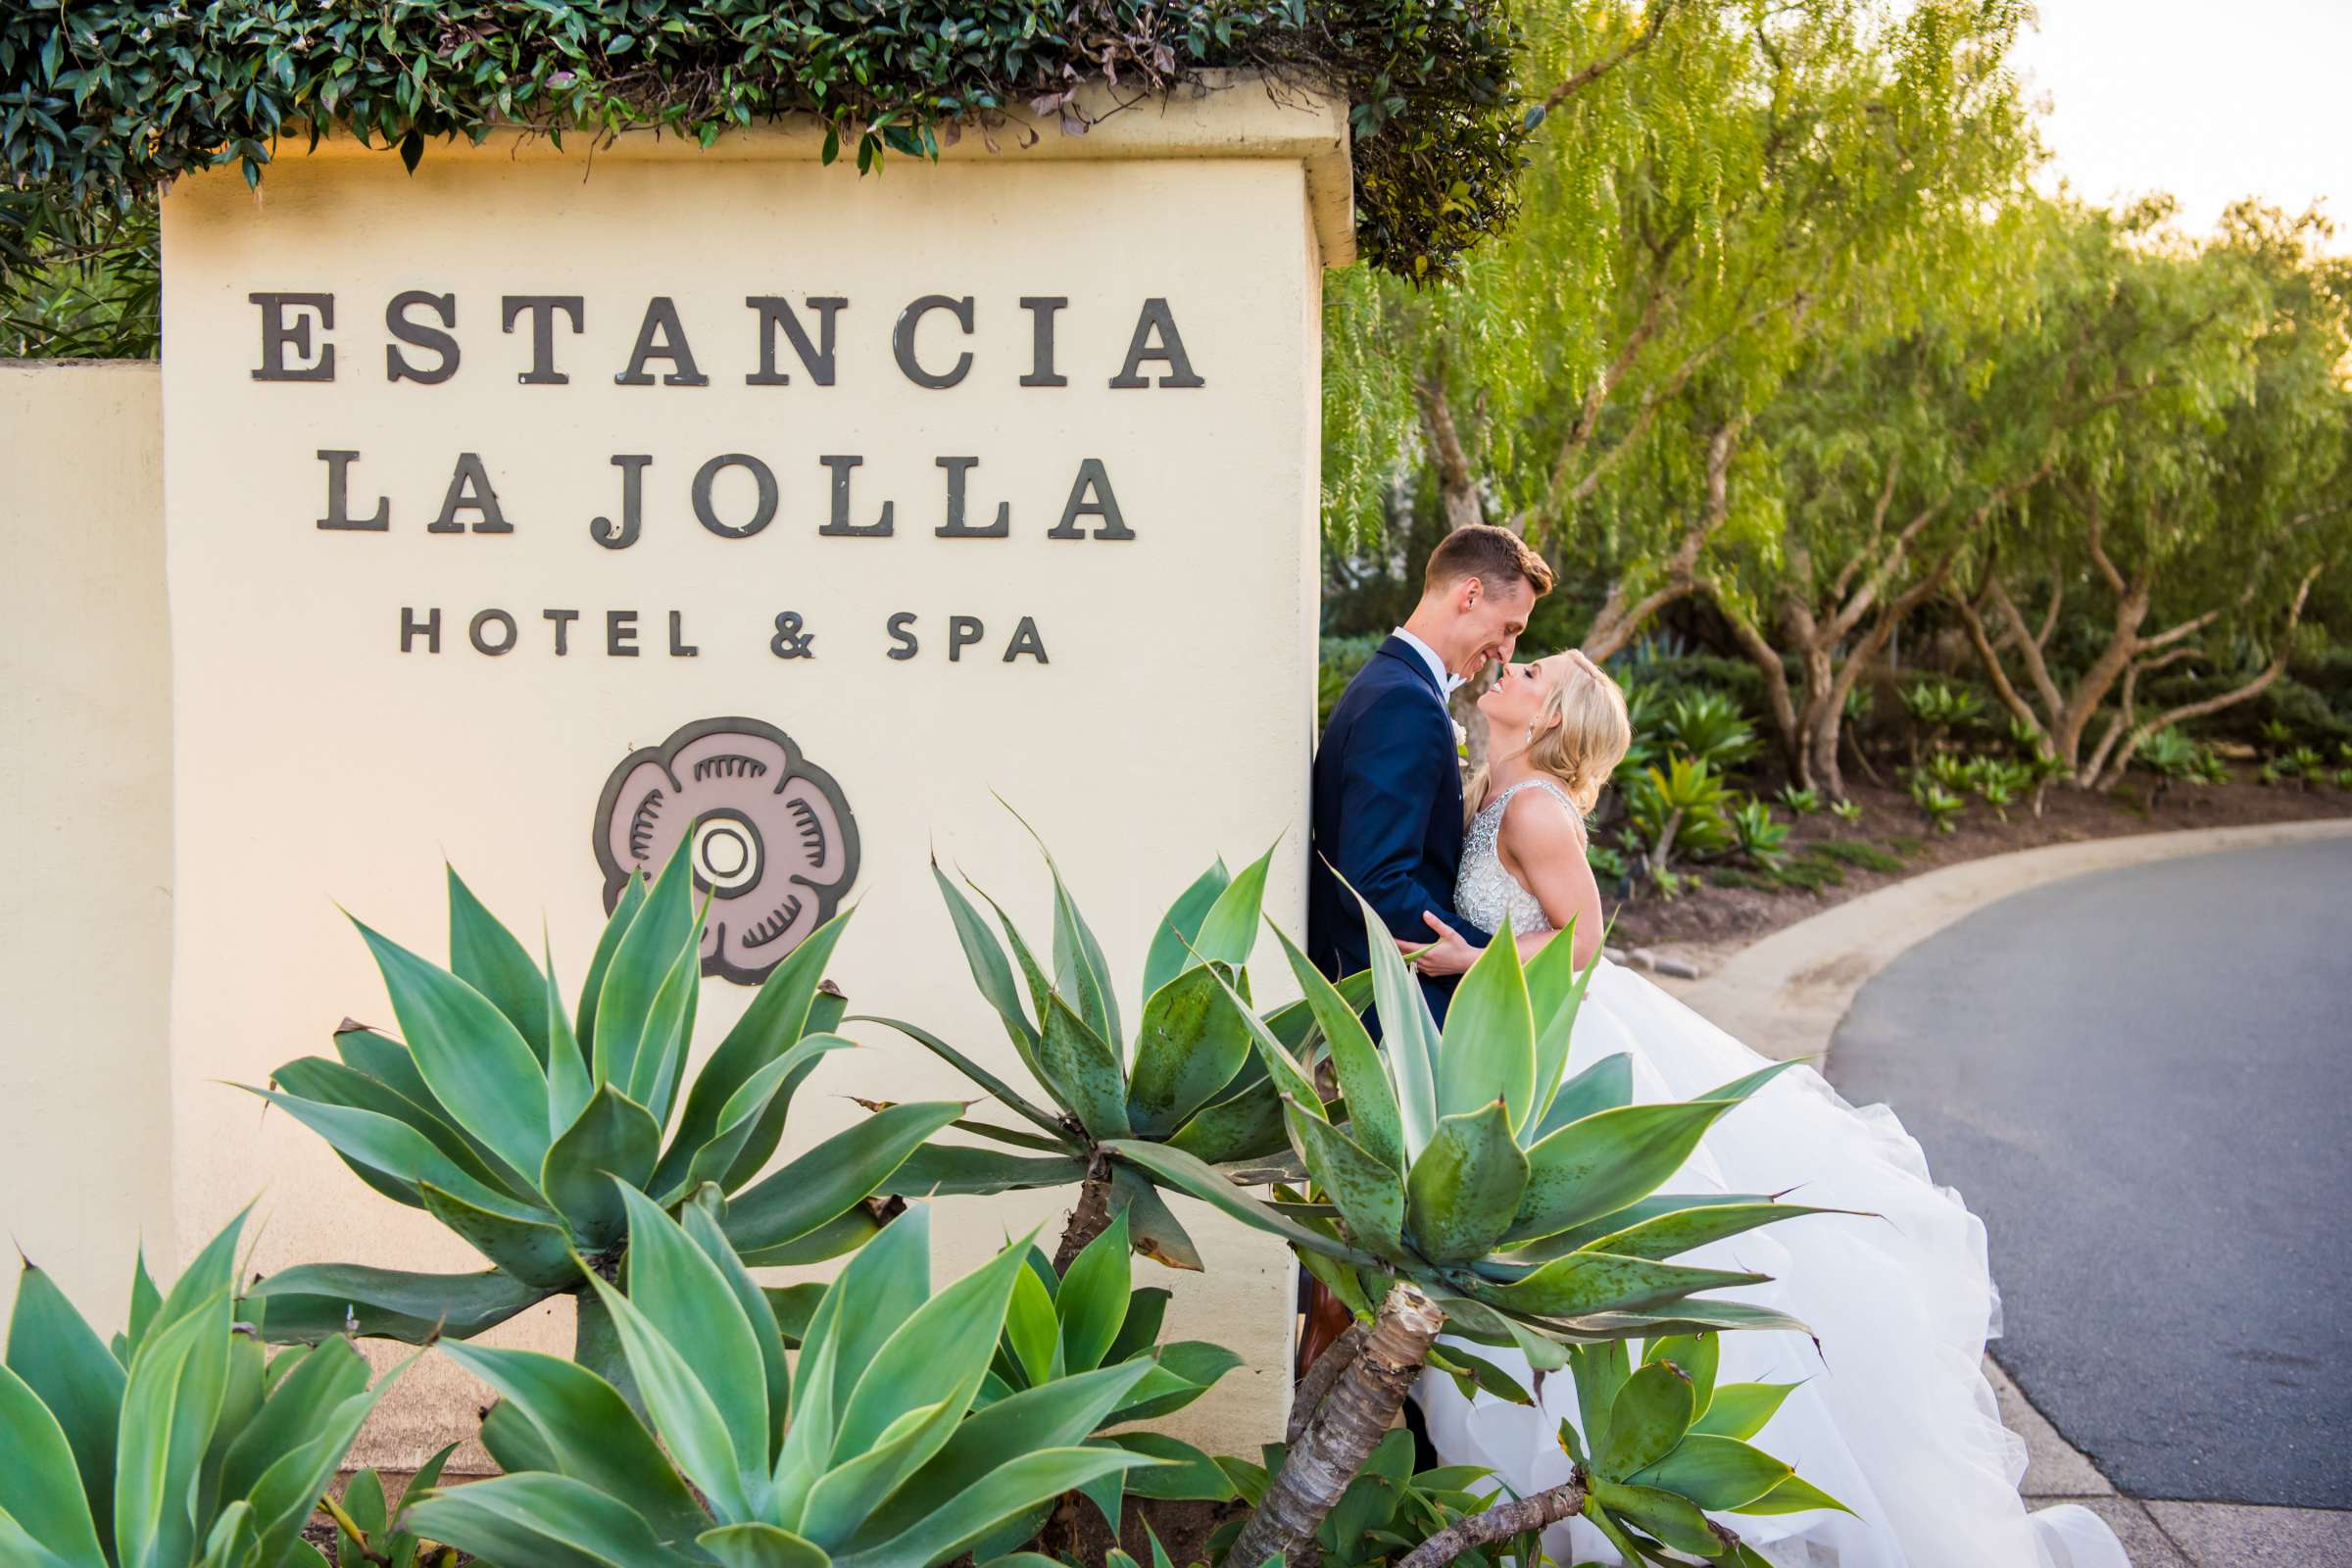 Estancia Wedding coordinated by Details Darling, Kaileigh and Richard Wedding Photo #1 by True Photography